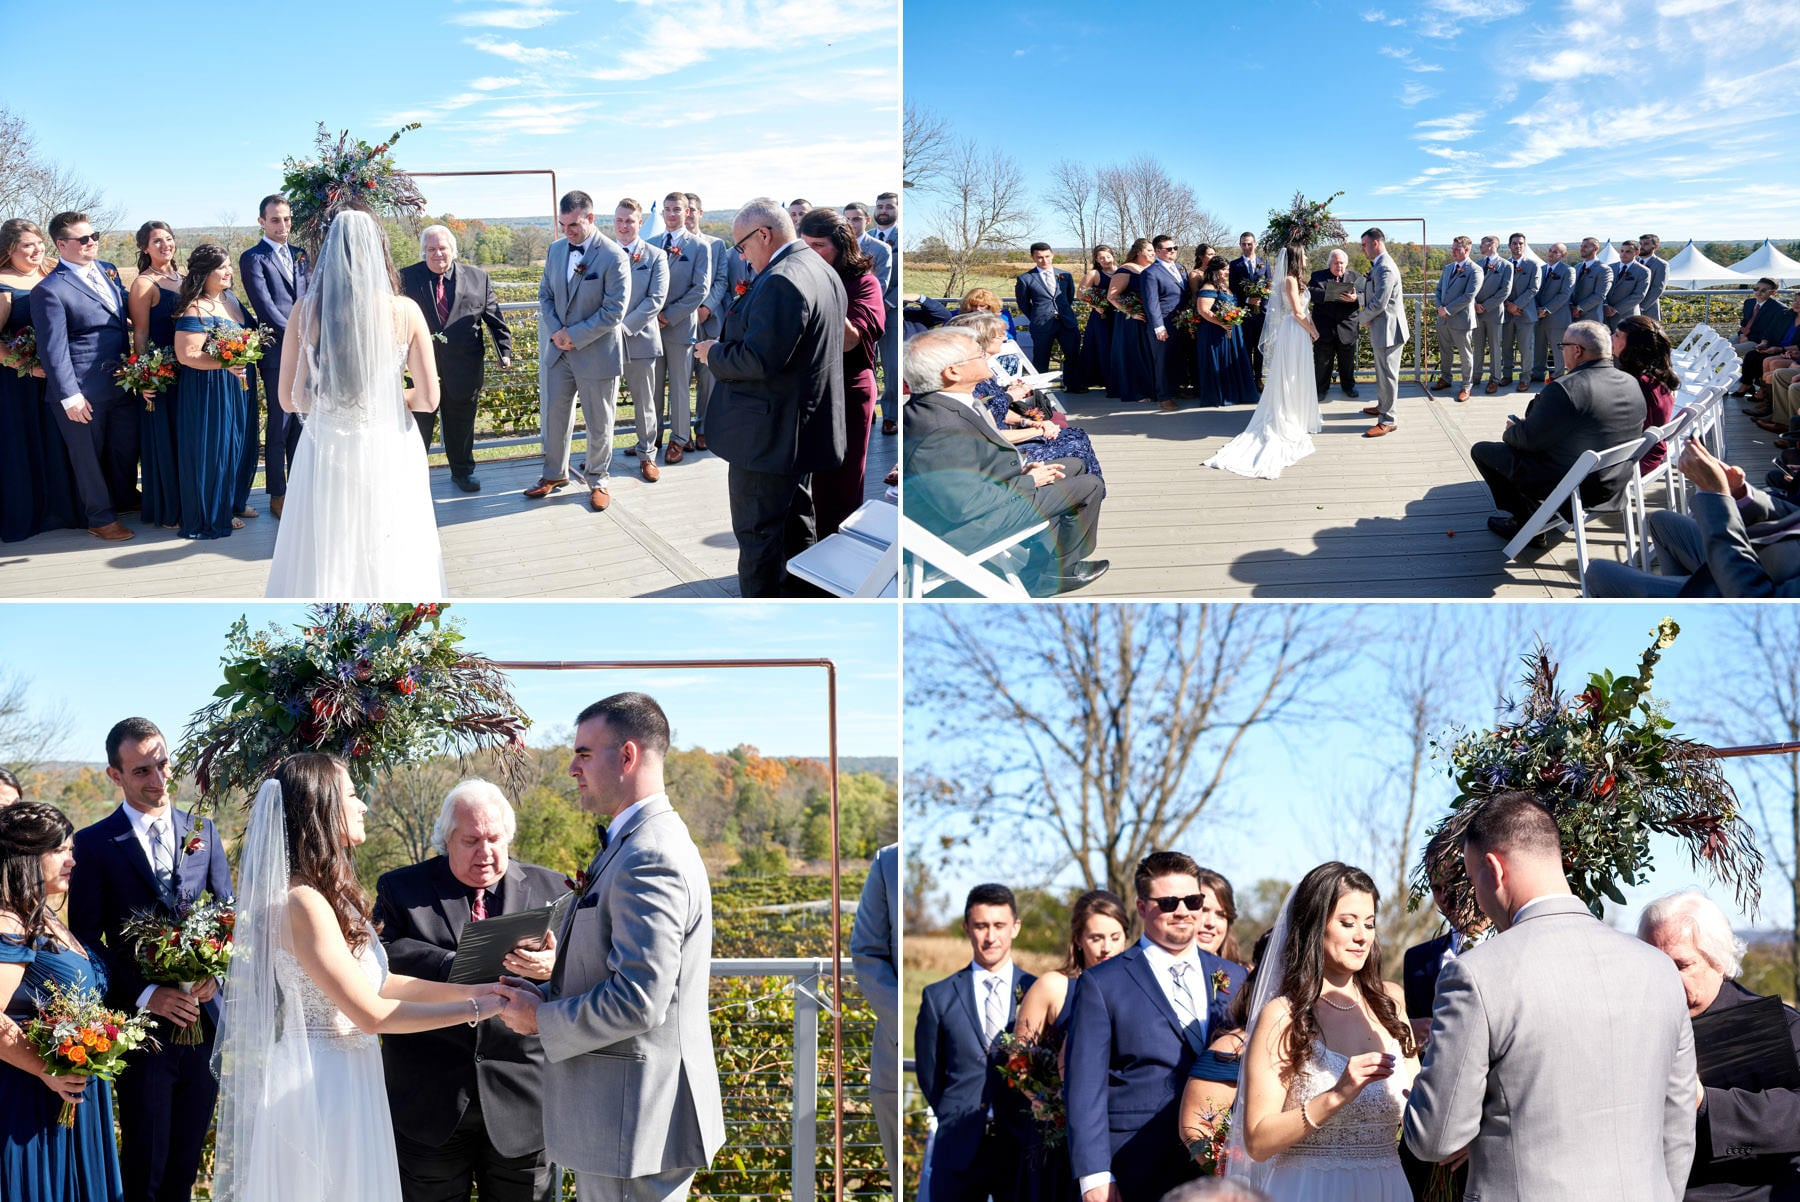 wedding ceremony photos at old york cellars